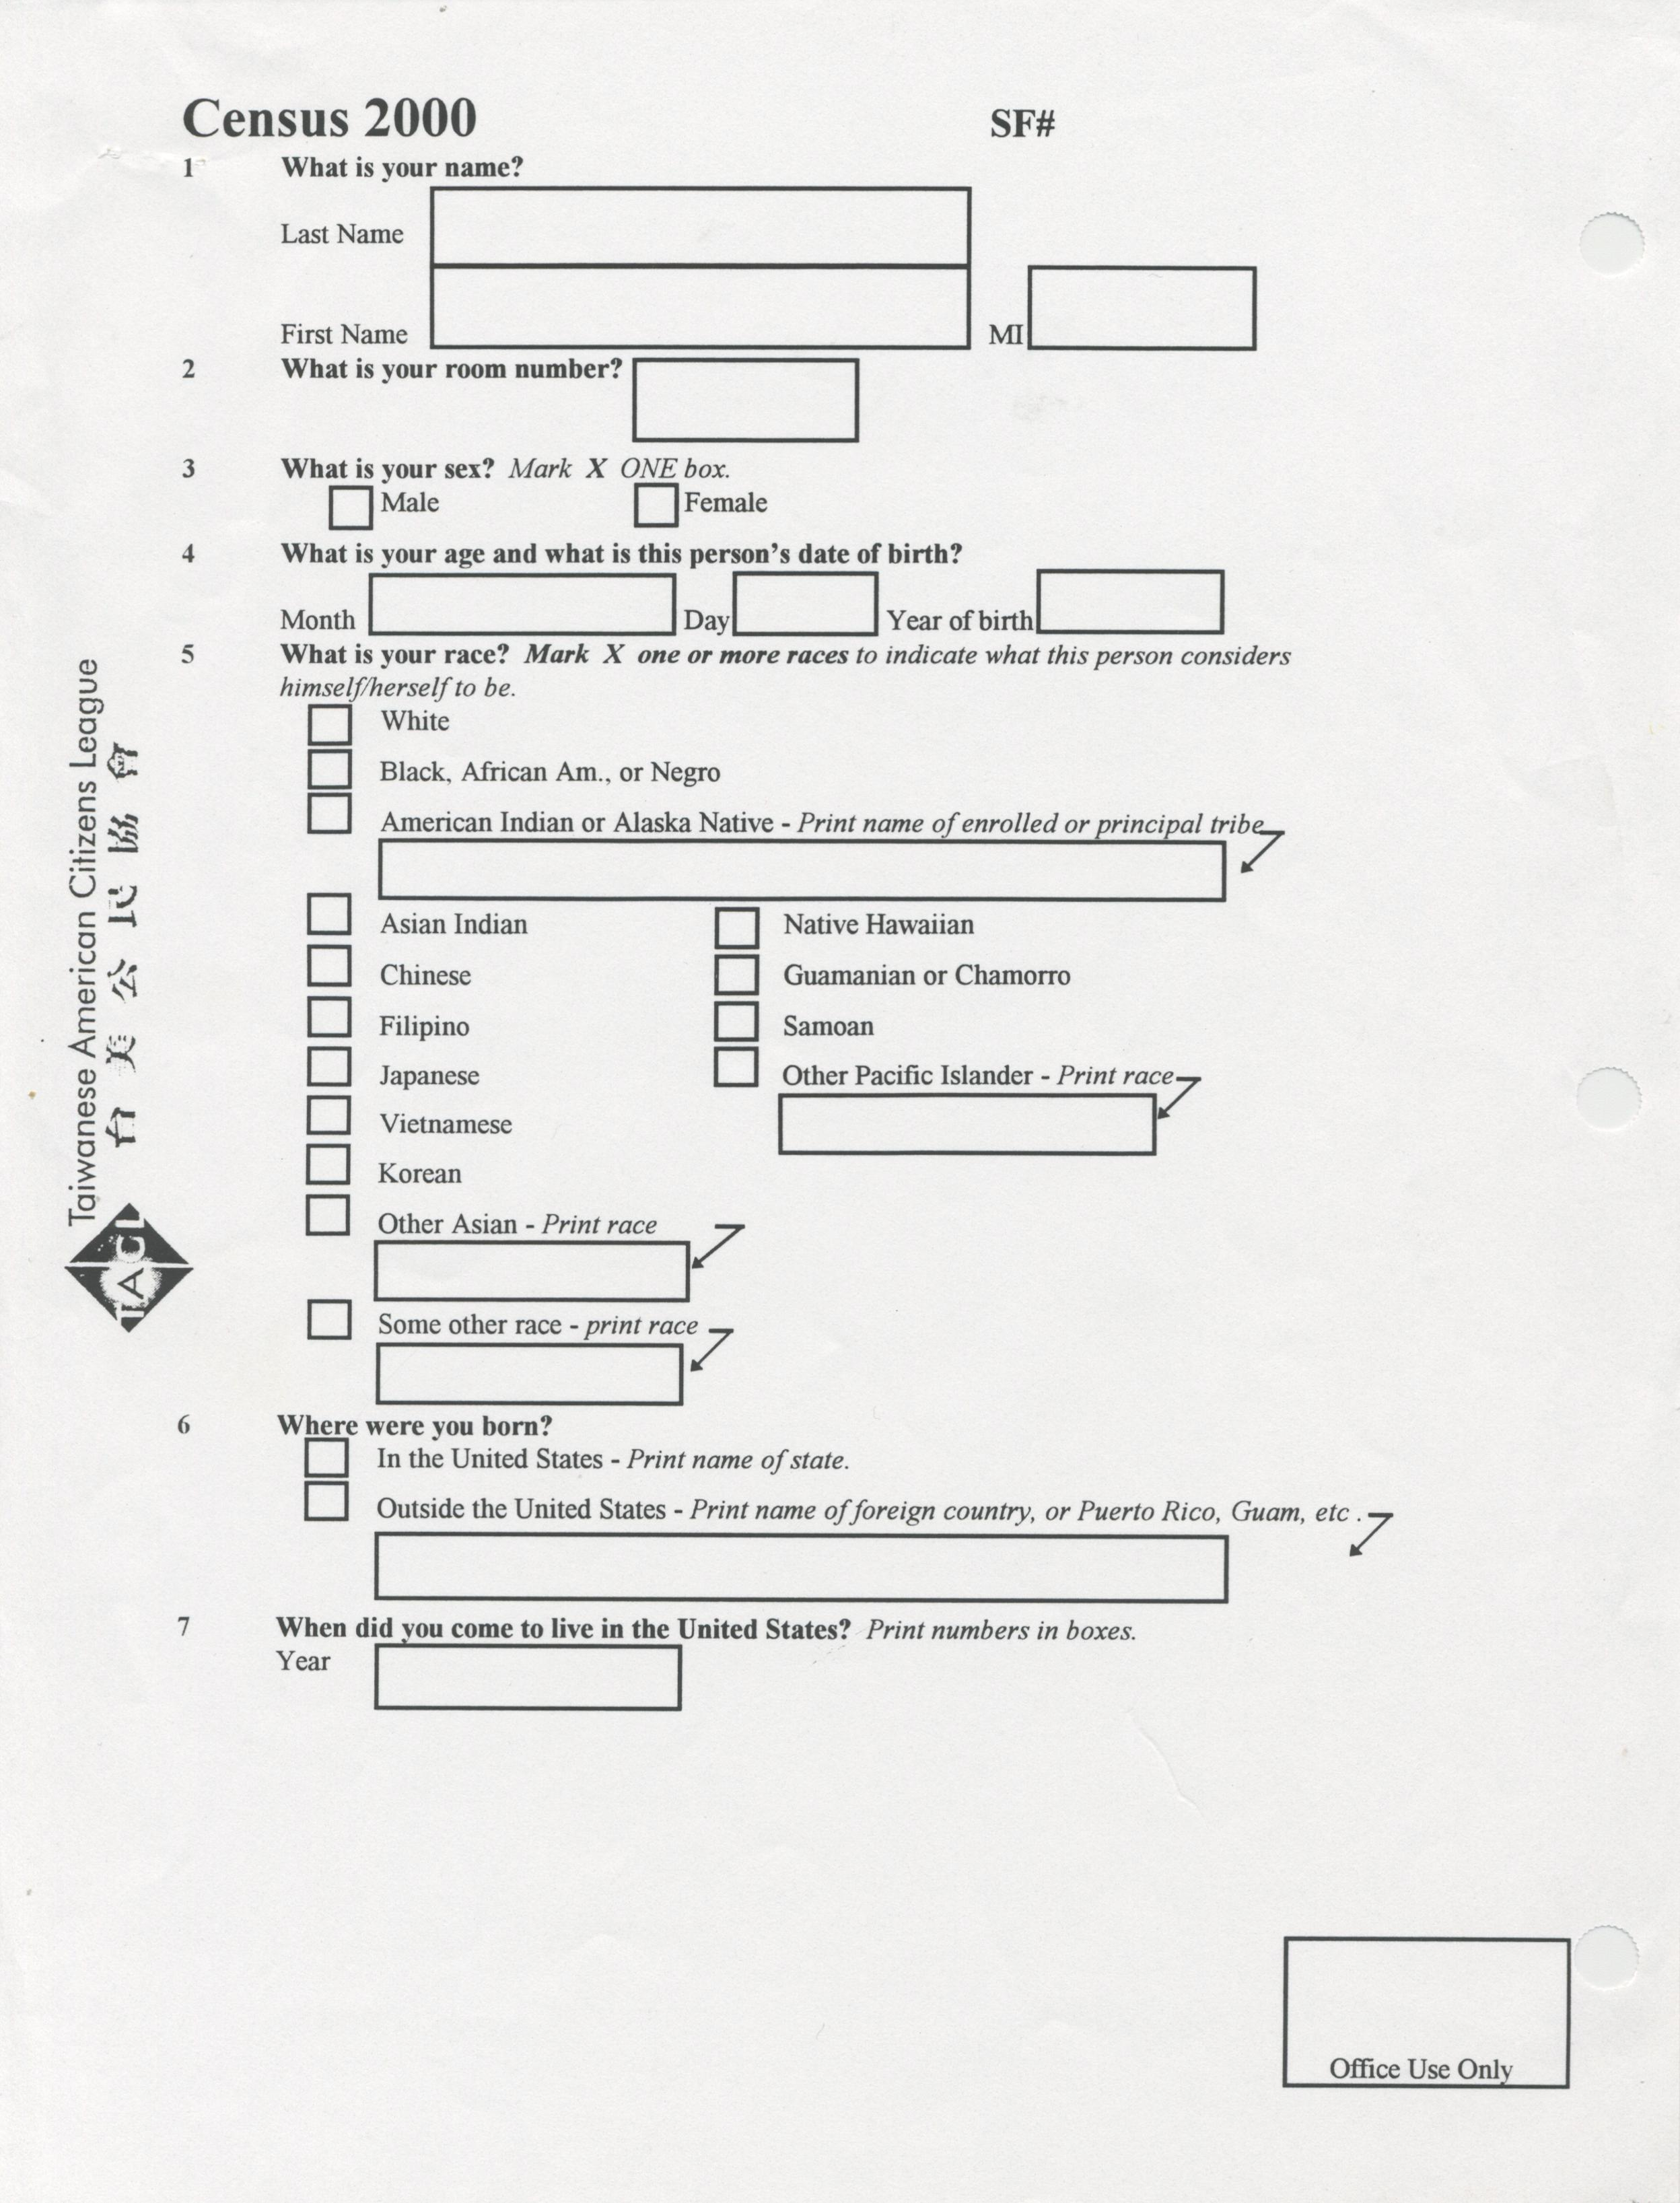 Full Timeline of the TA Census Campaign (1980s-Present)